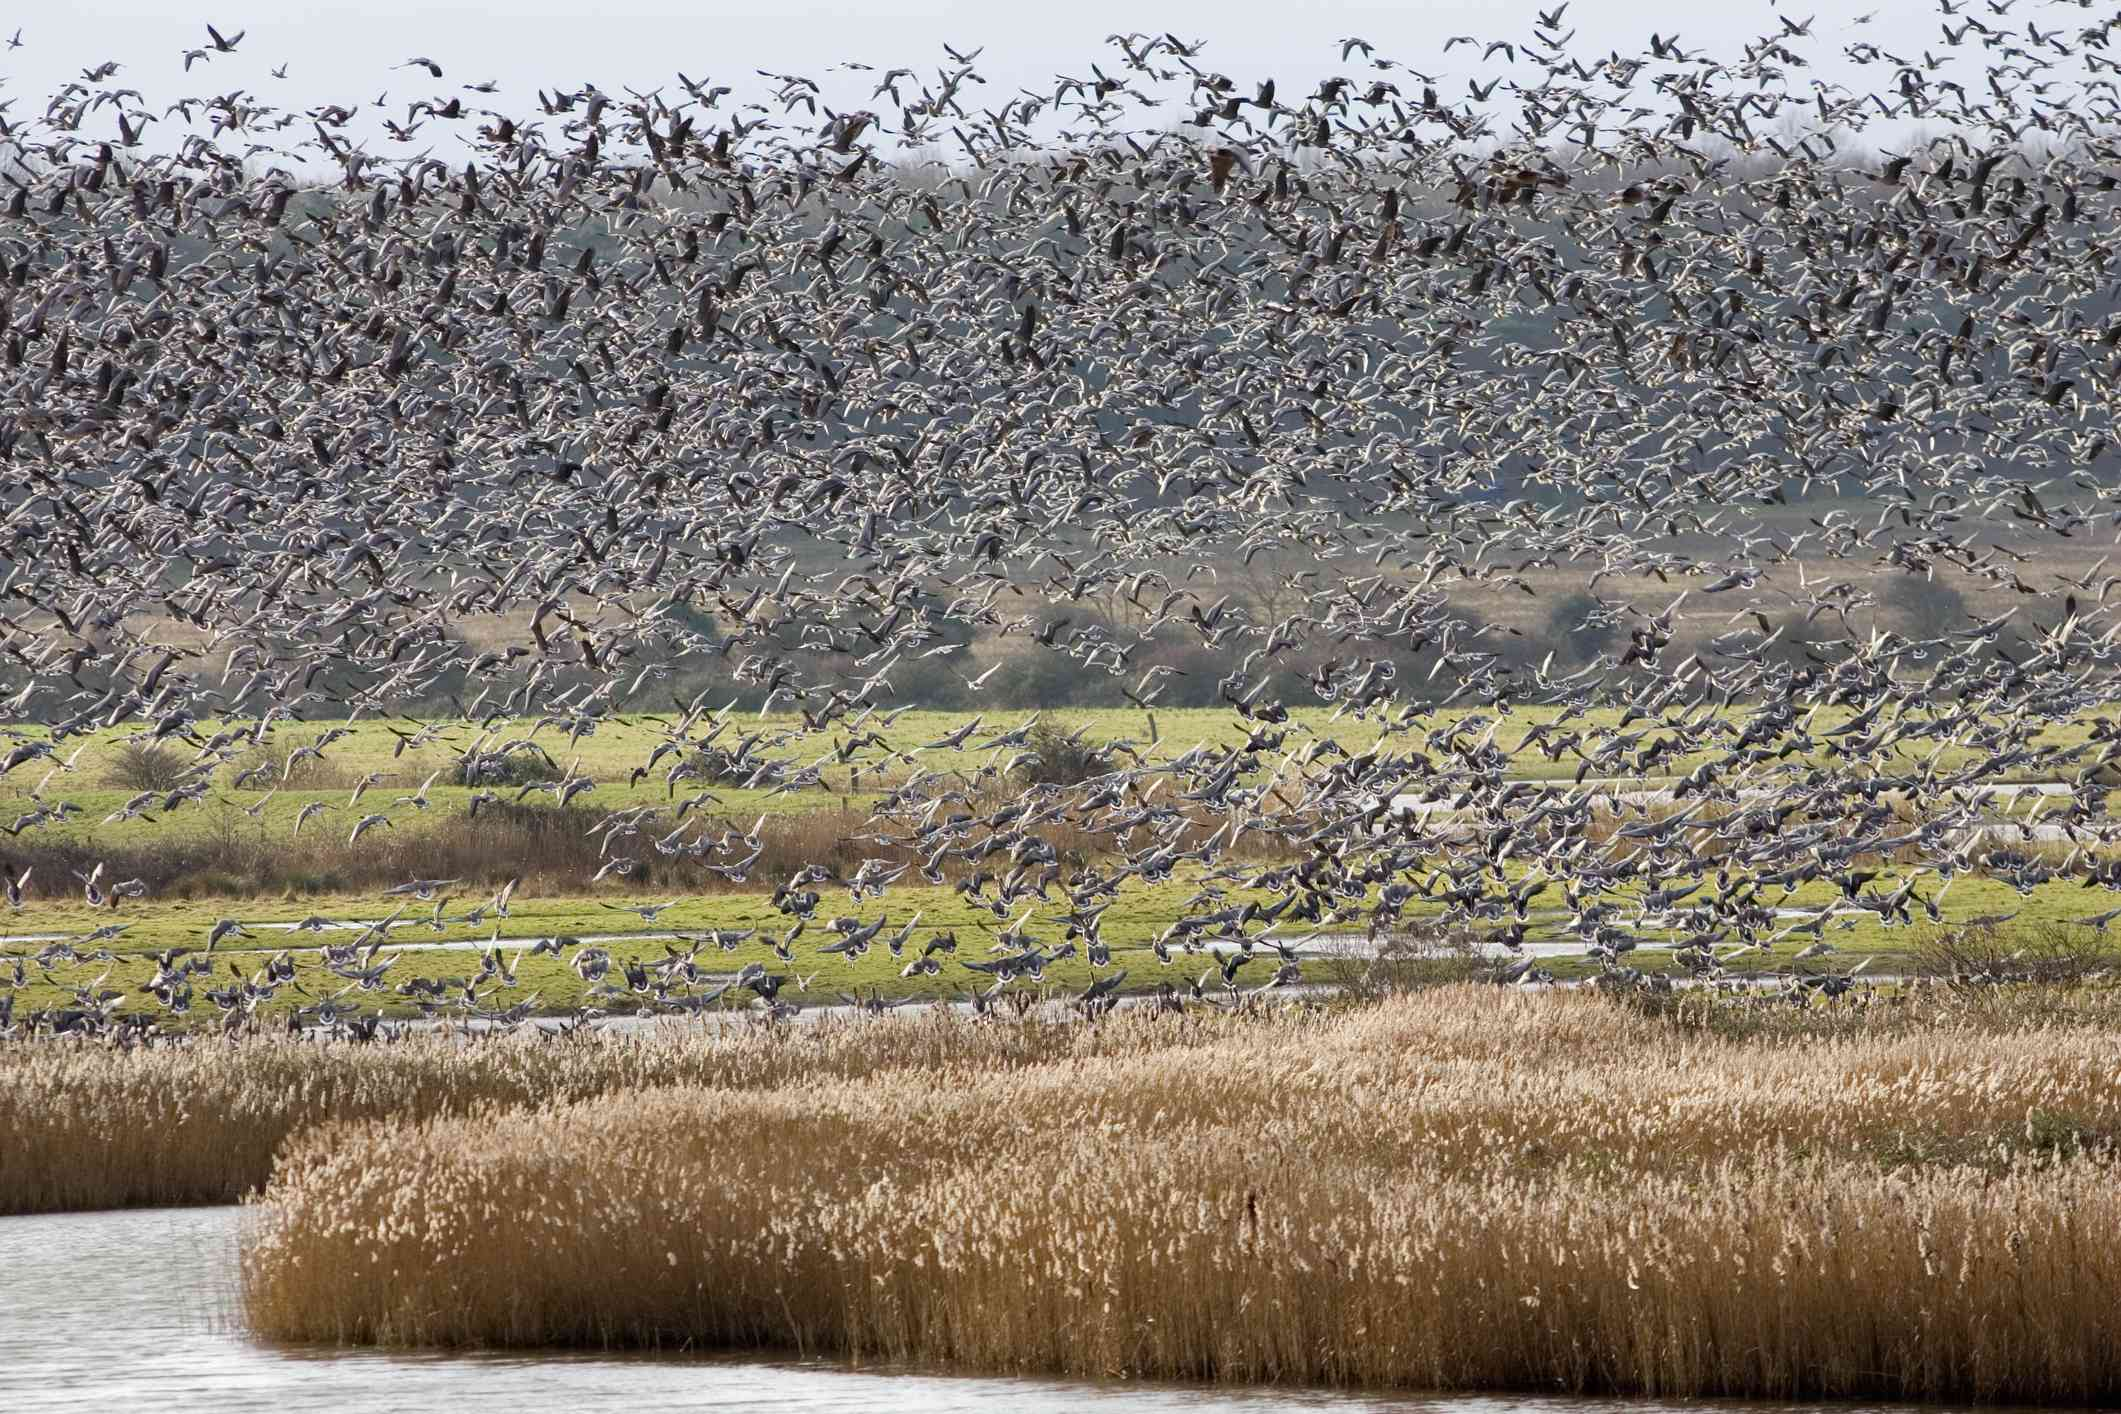 Flocks of pink-footed geese in flight over marshland